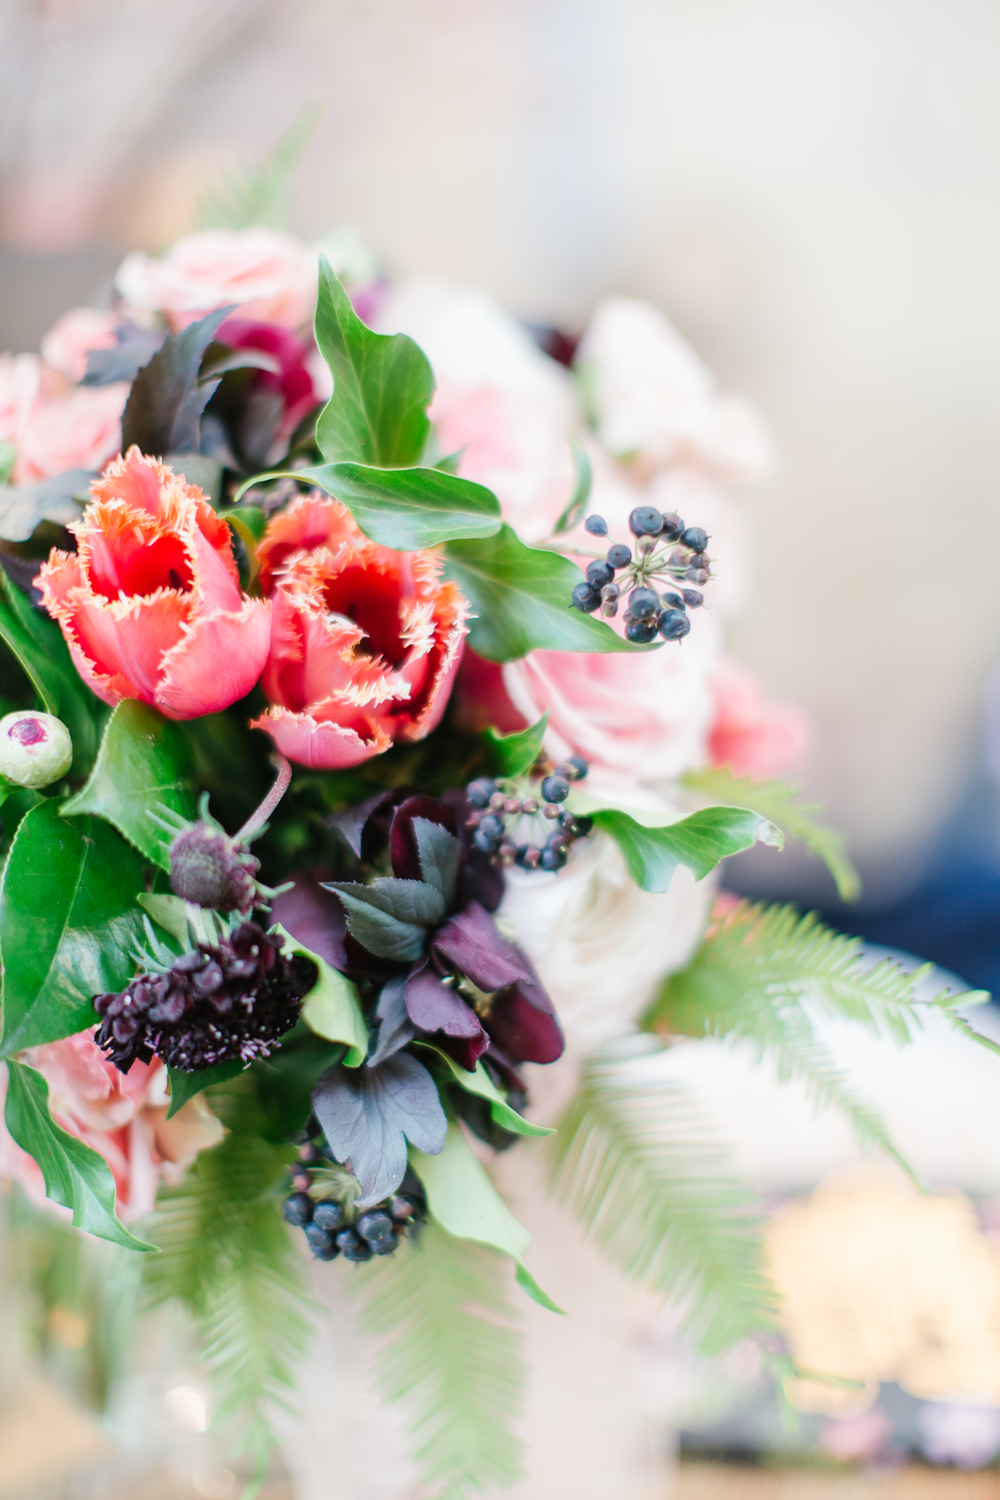 02.22.15 [Wedding Co Market]-High Res-1.jpg